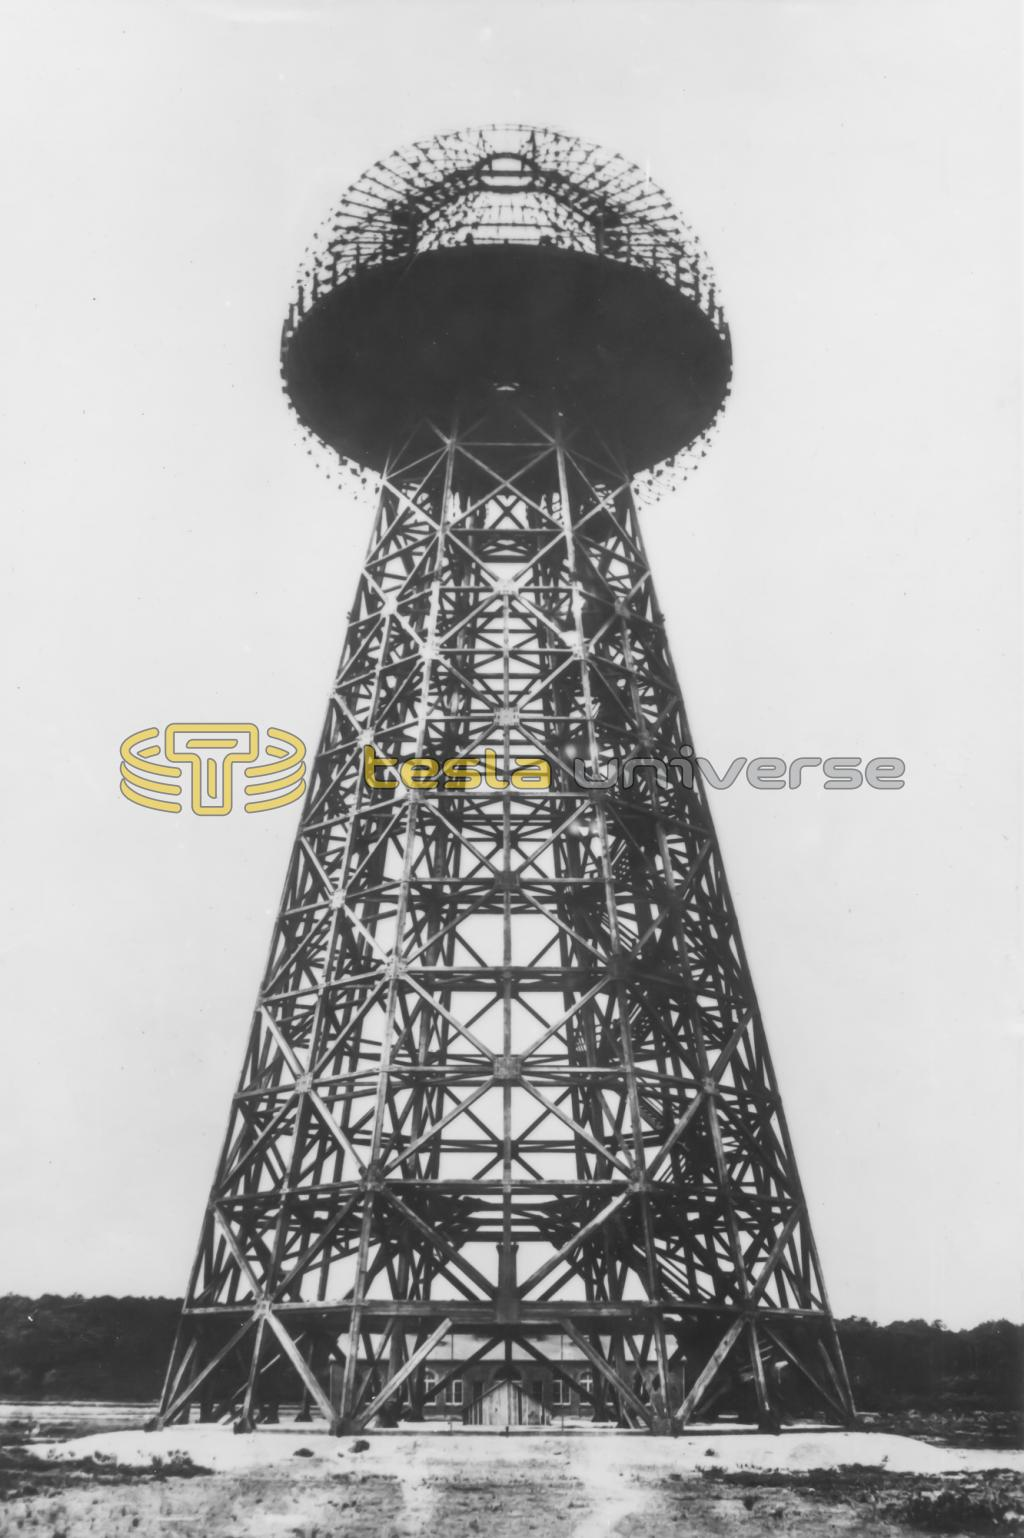 Tesla's tower of the Worldwide Wireless System